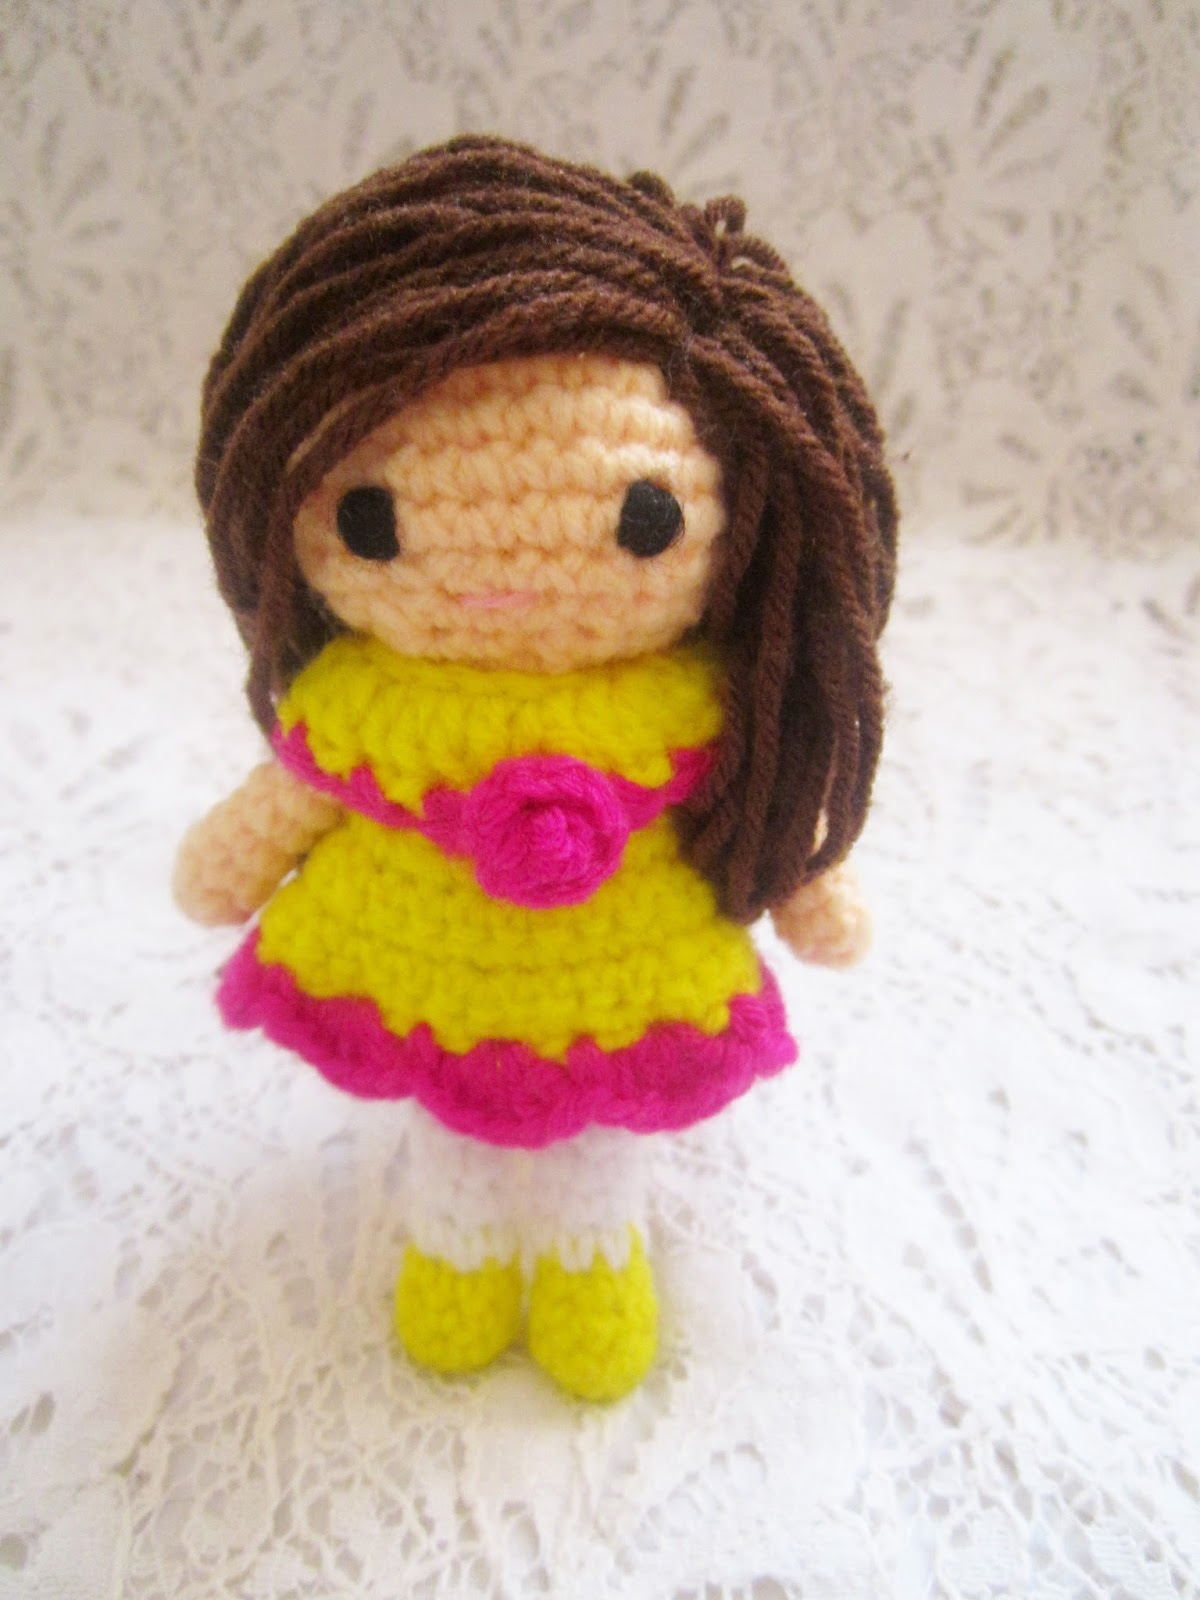 Small Amigurumi Doll Pattern : Little Amigurumi doll pattern. - A little love everyday!